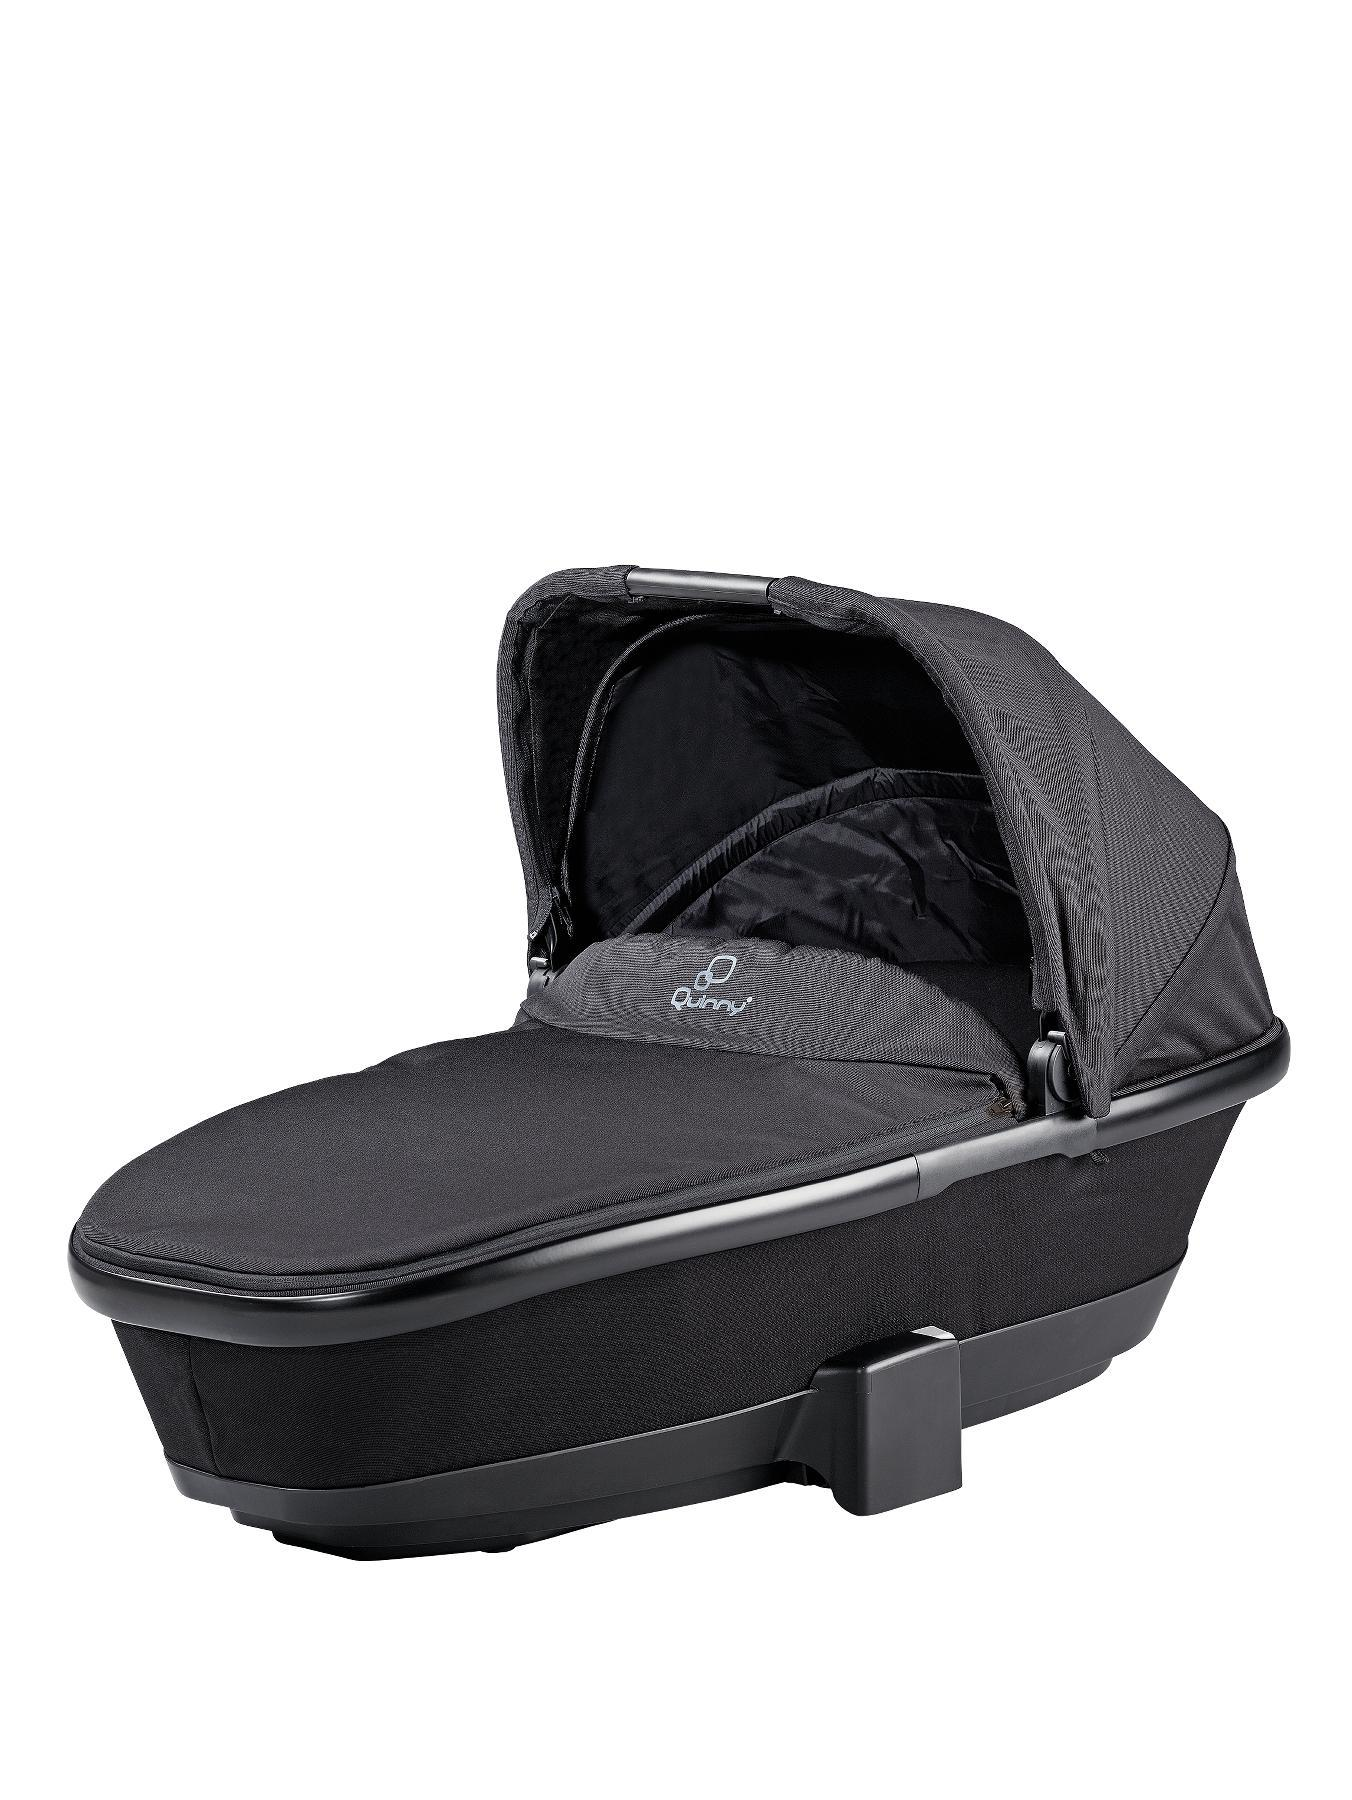 Foldable Carrycot VioletBlackPurpleRed